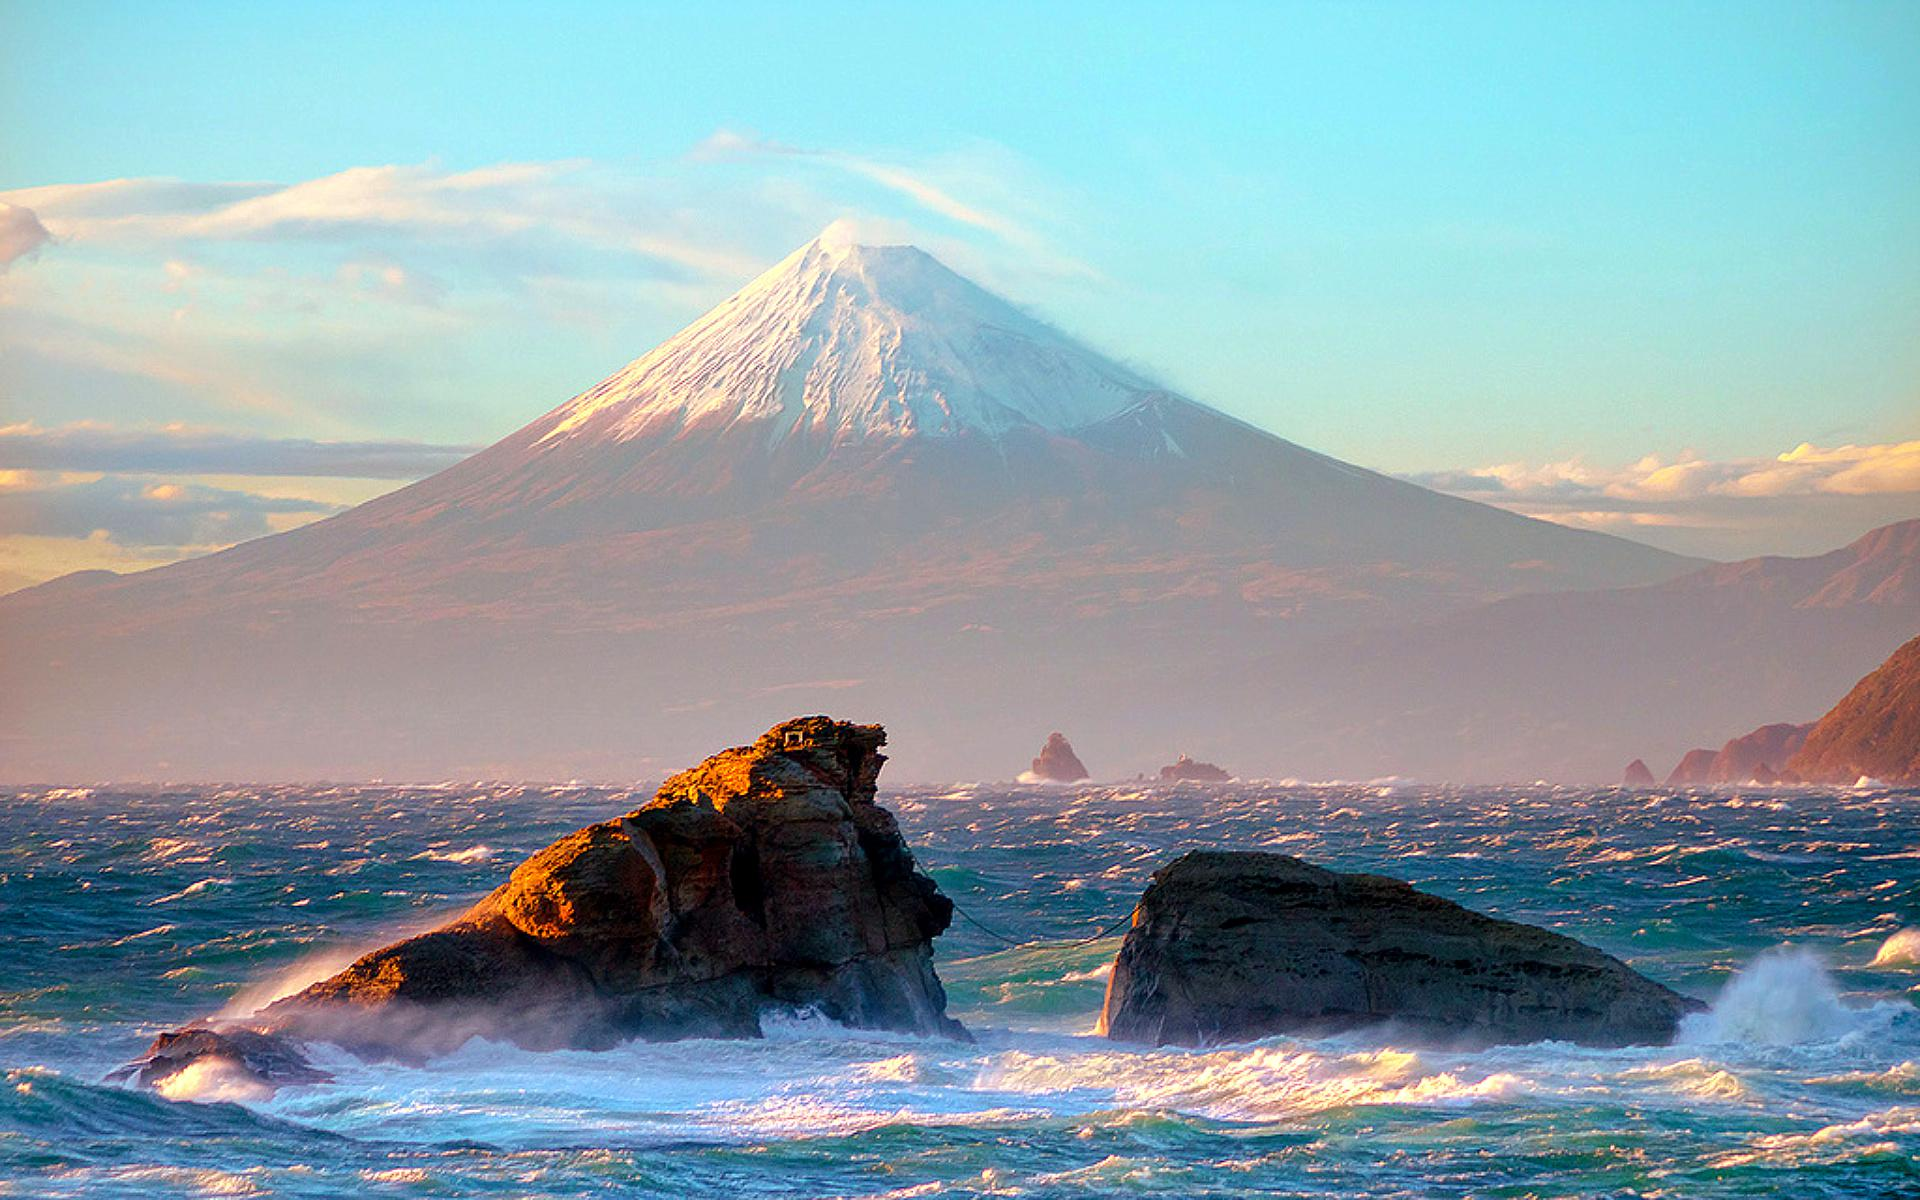 Mount fuji japan   160641   High Quality and Resolution Wallpapers 1920x1200